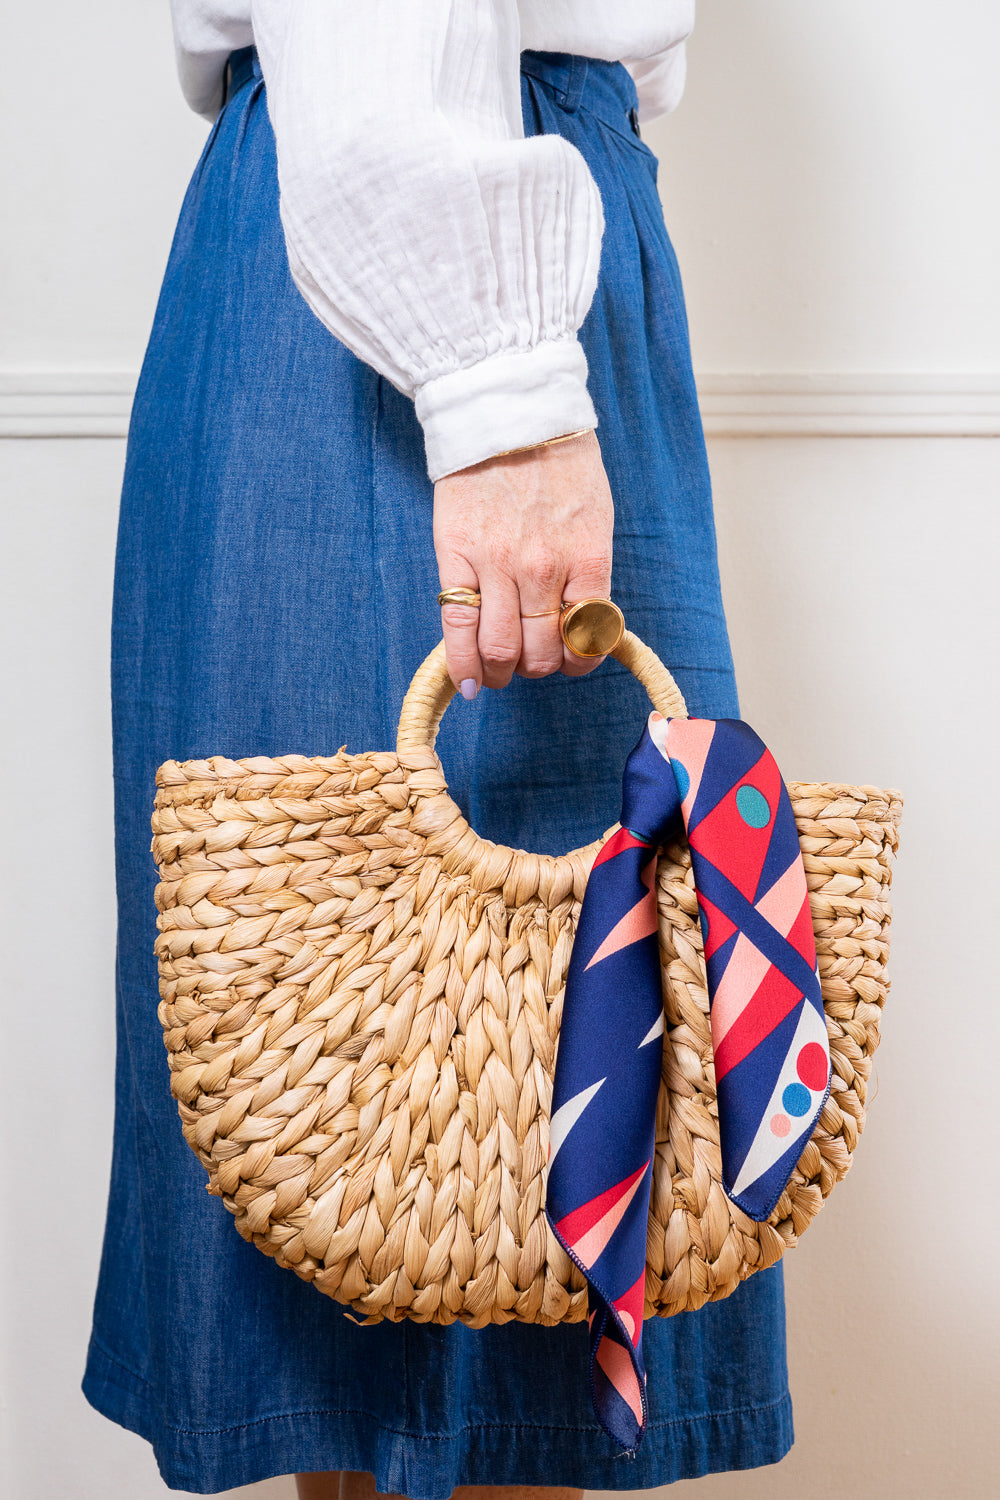 natural raffia straw rattan tote hand bag with blue and red scarf held in hand Janna Conner